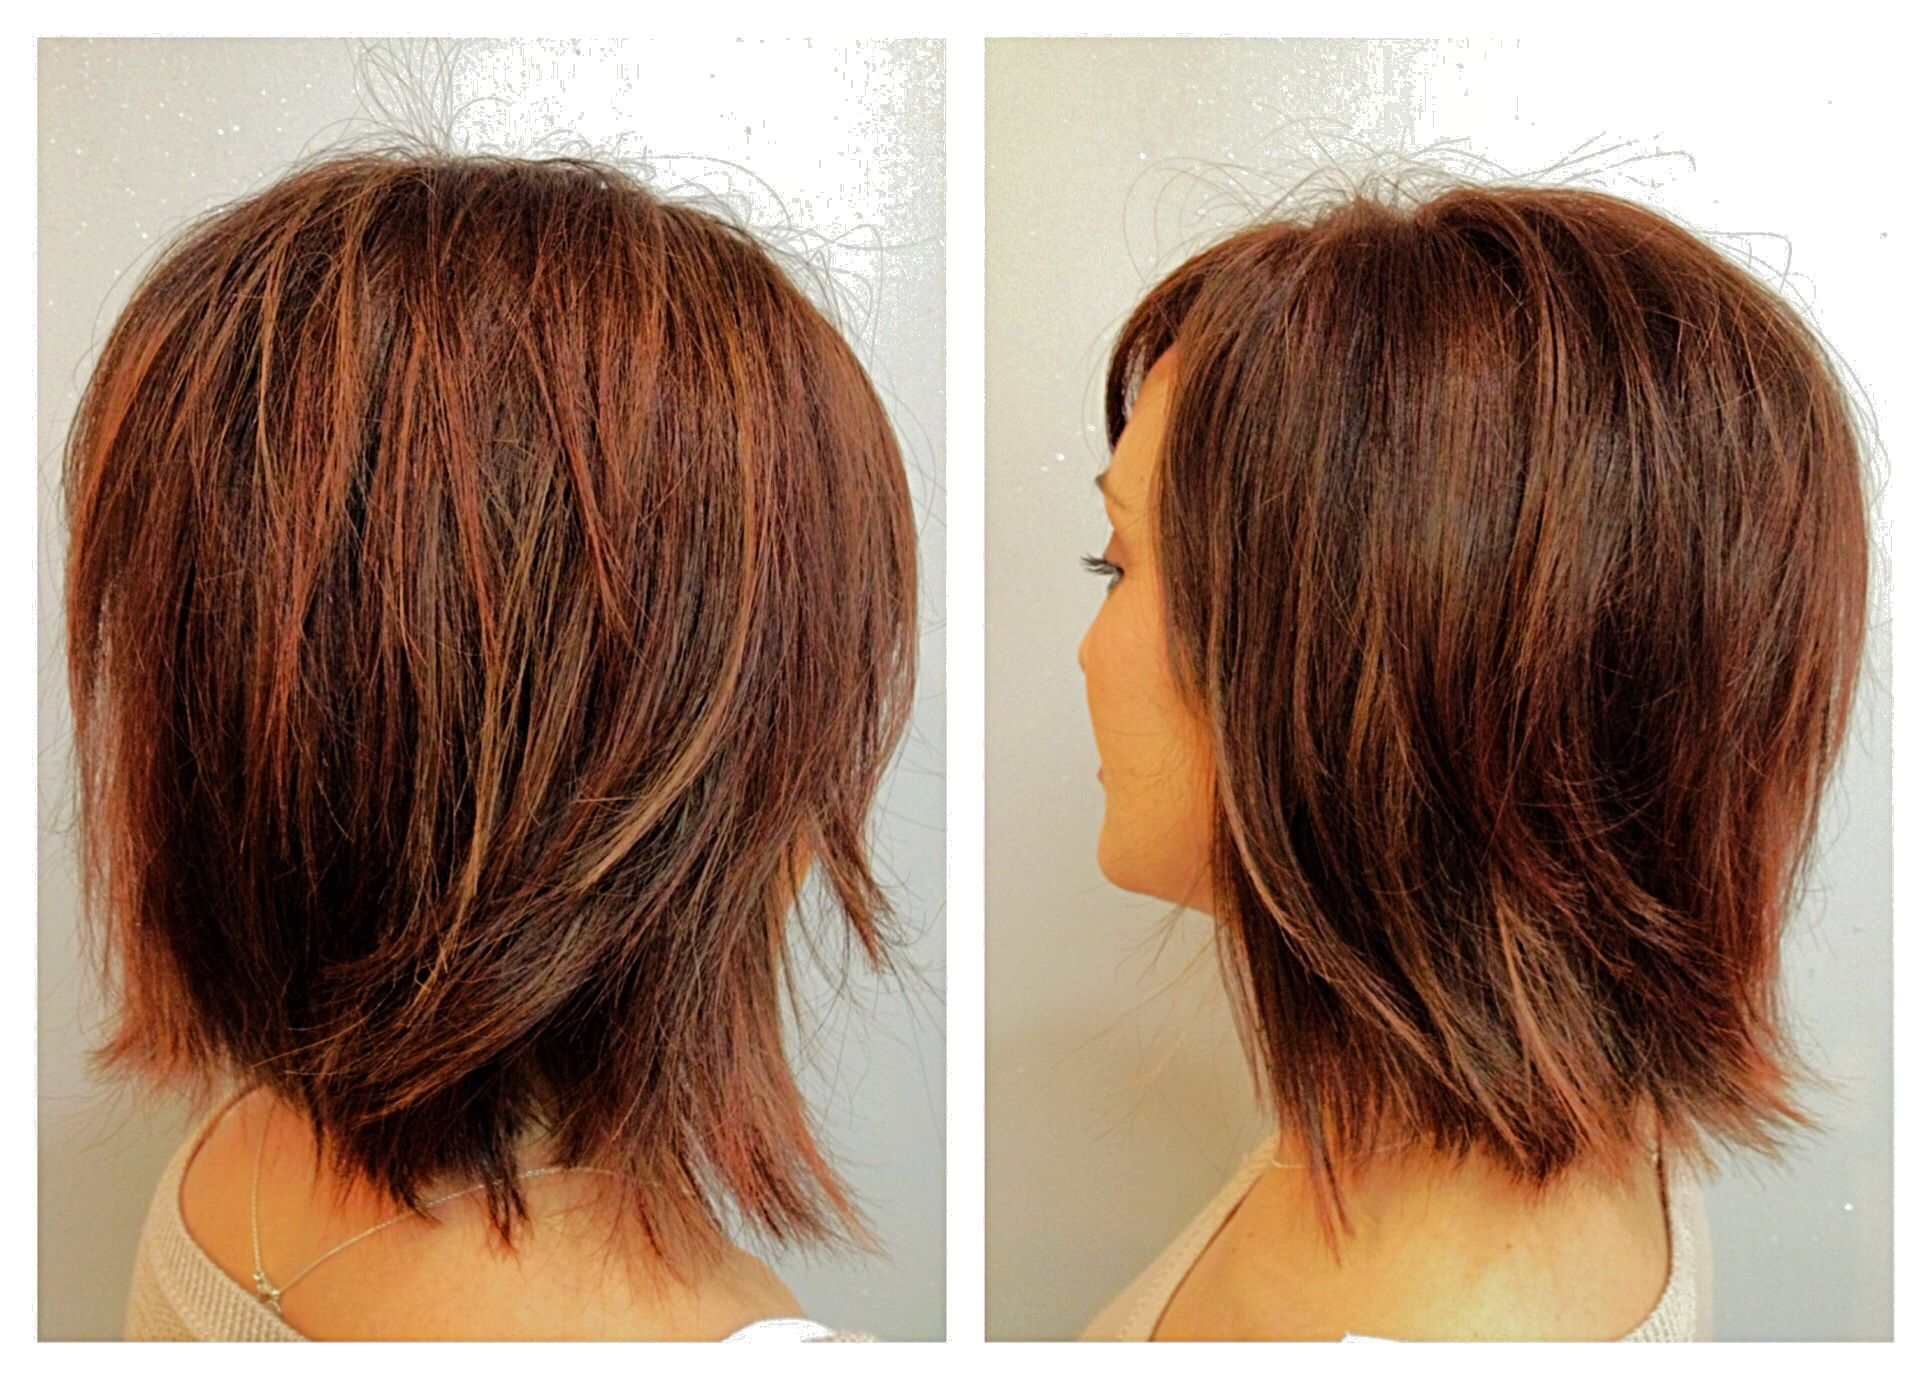 Neck Length Hairstyles neck length hairstyles Find This Pin And More On Possible Hair Stylescolors By Sdunlap68